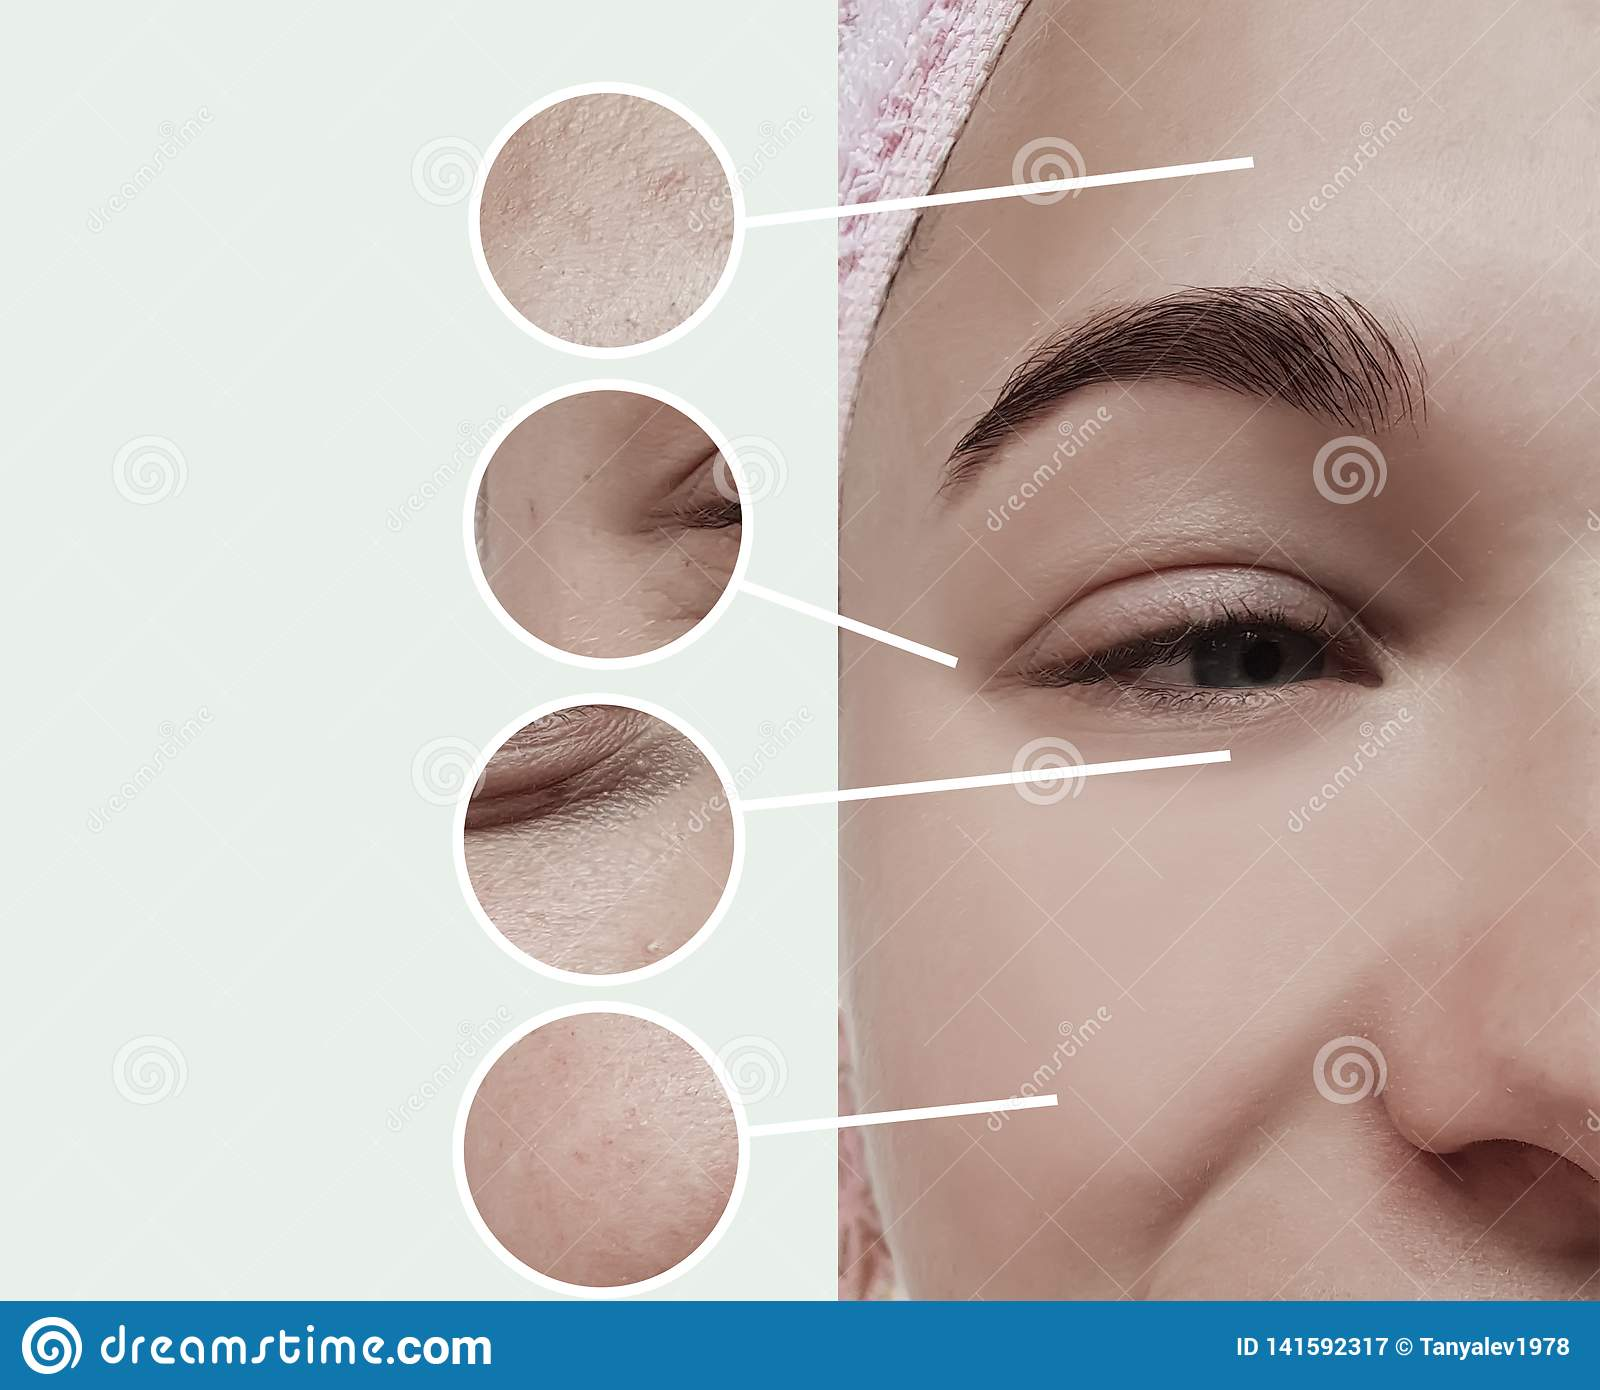 Woman eyes wrinkles bloating dermatology therapy concept contrast before and after collage